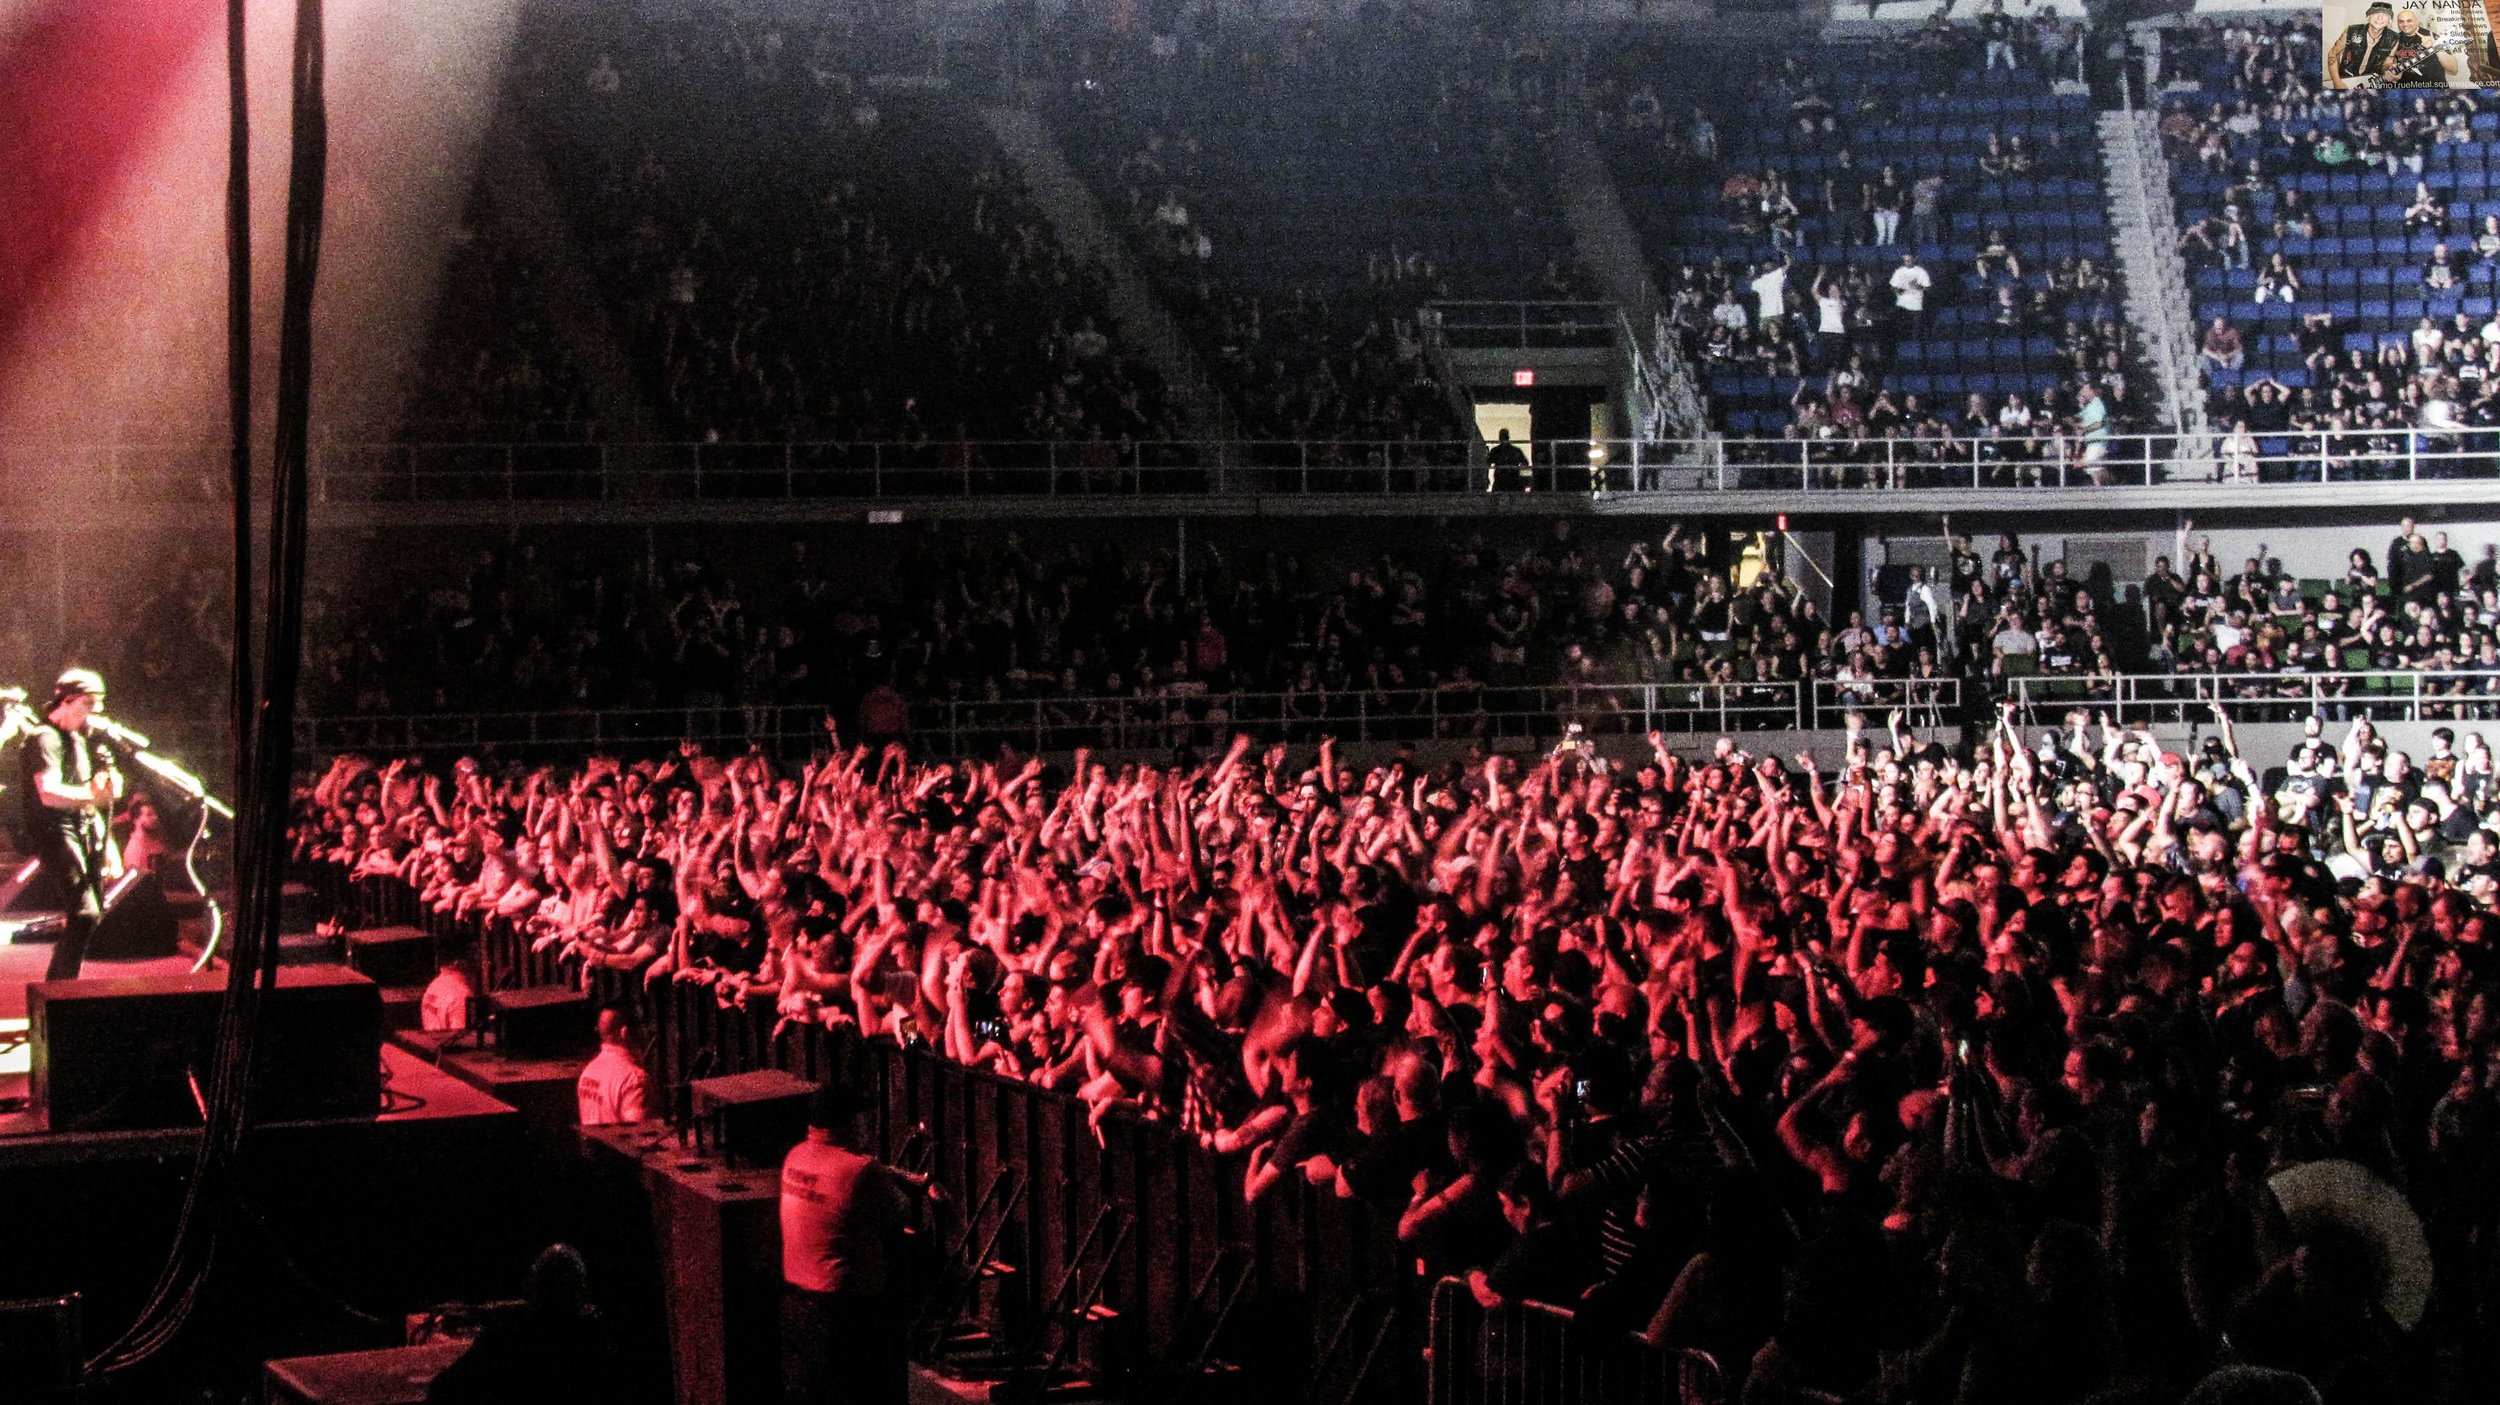 An estimated 3,500 fans turned out on a Tuesday to watch Godsmack and Stitched Up Heart.